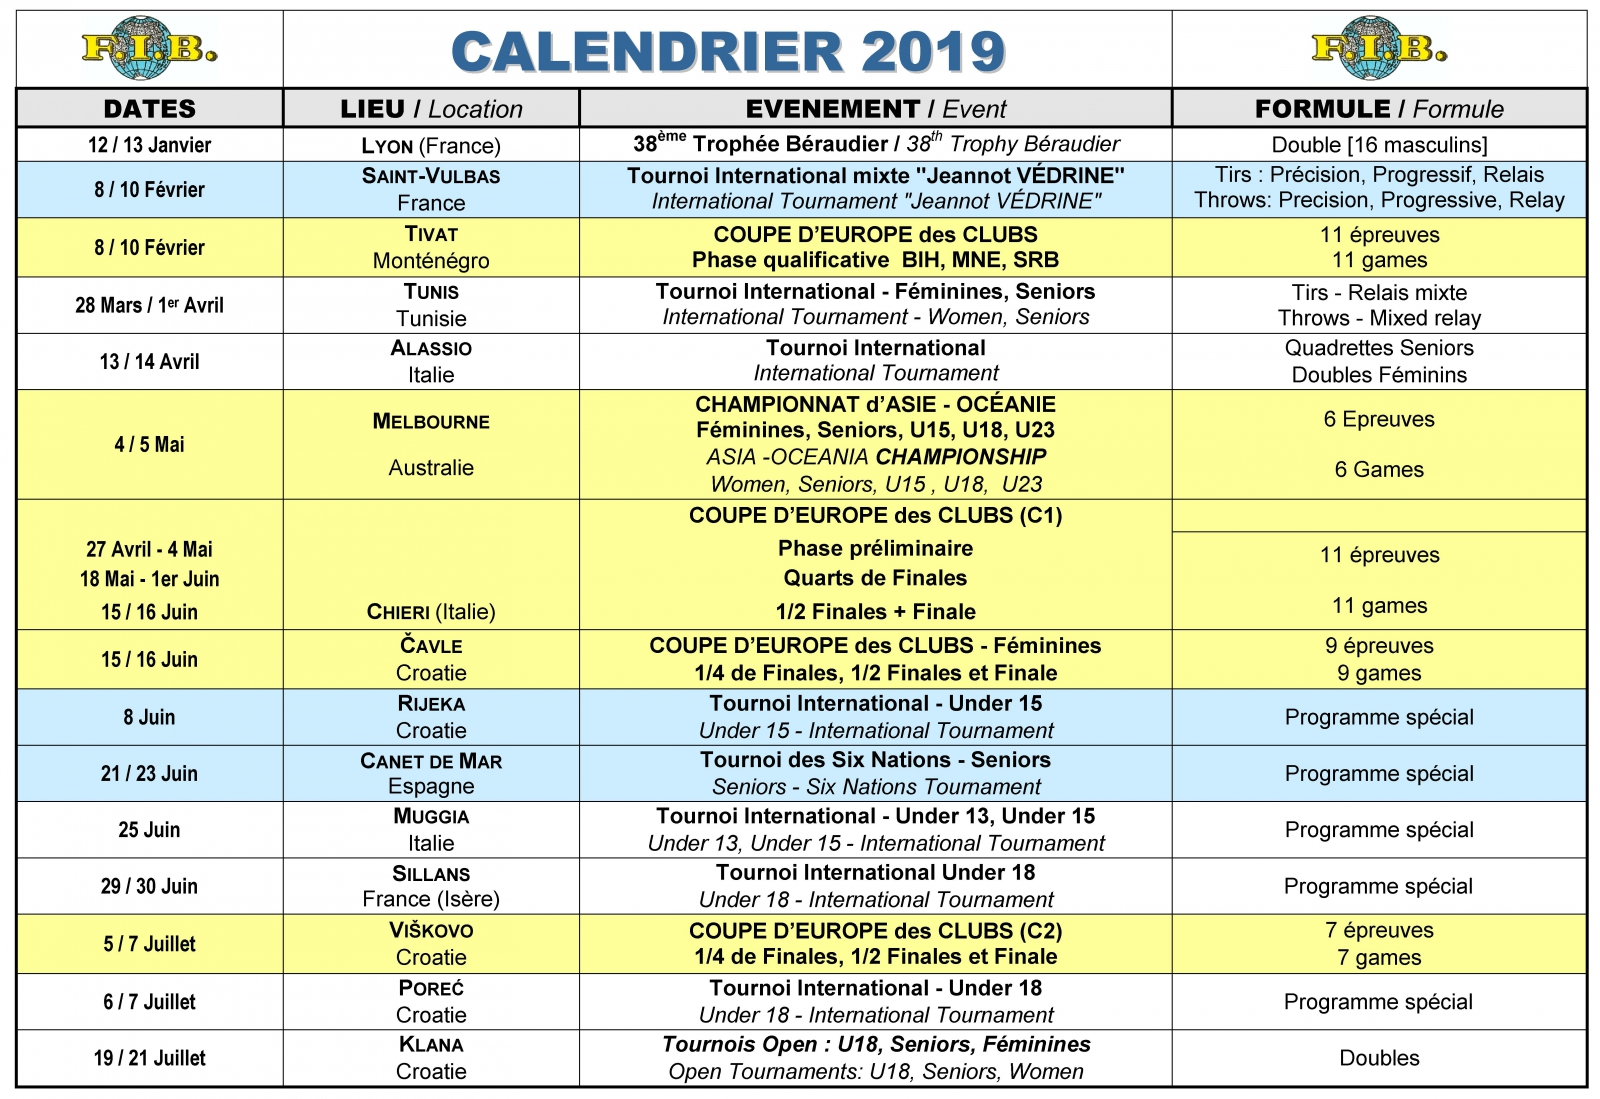 Calendrier Matches Coupe Du Monde 2020.Calendrier 2019 Federation Internationale De Boules